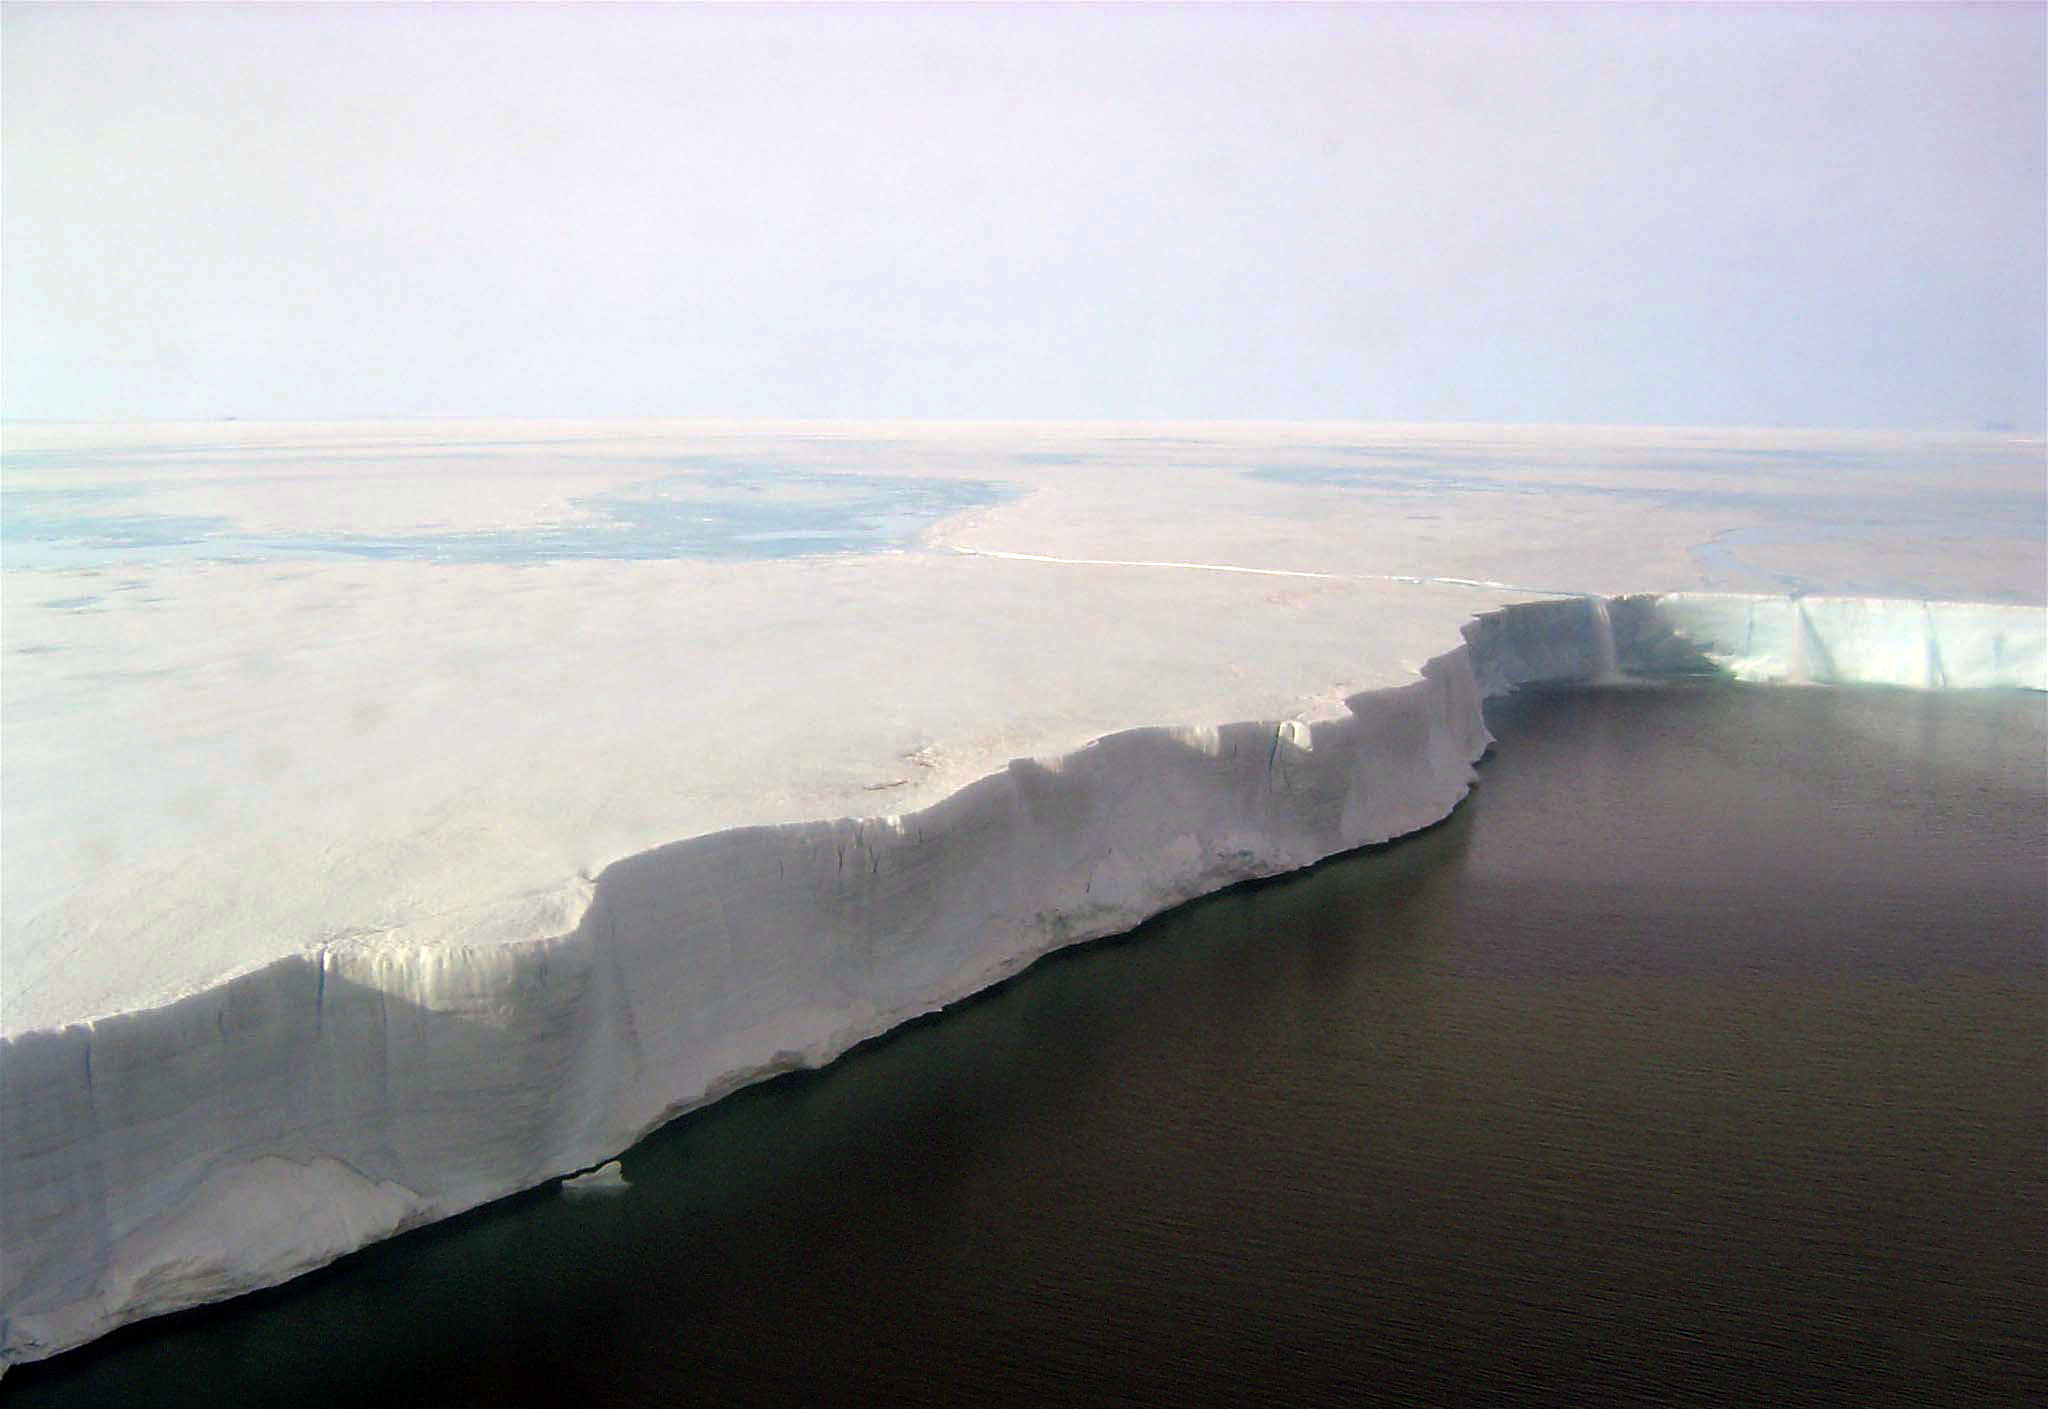 This in-flight photo shows the edge of the Larsen B Ice Shelf. The surface is melted, and ice flows off the edge like a waterfall. Photo Credit: Ted Scambos and Rob Bauer, NSIDC